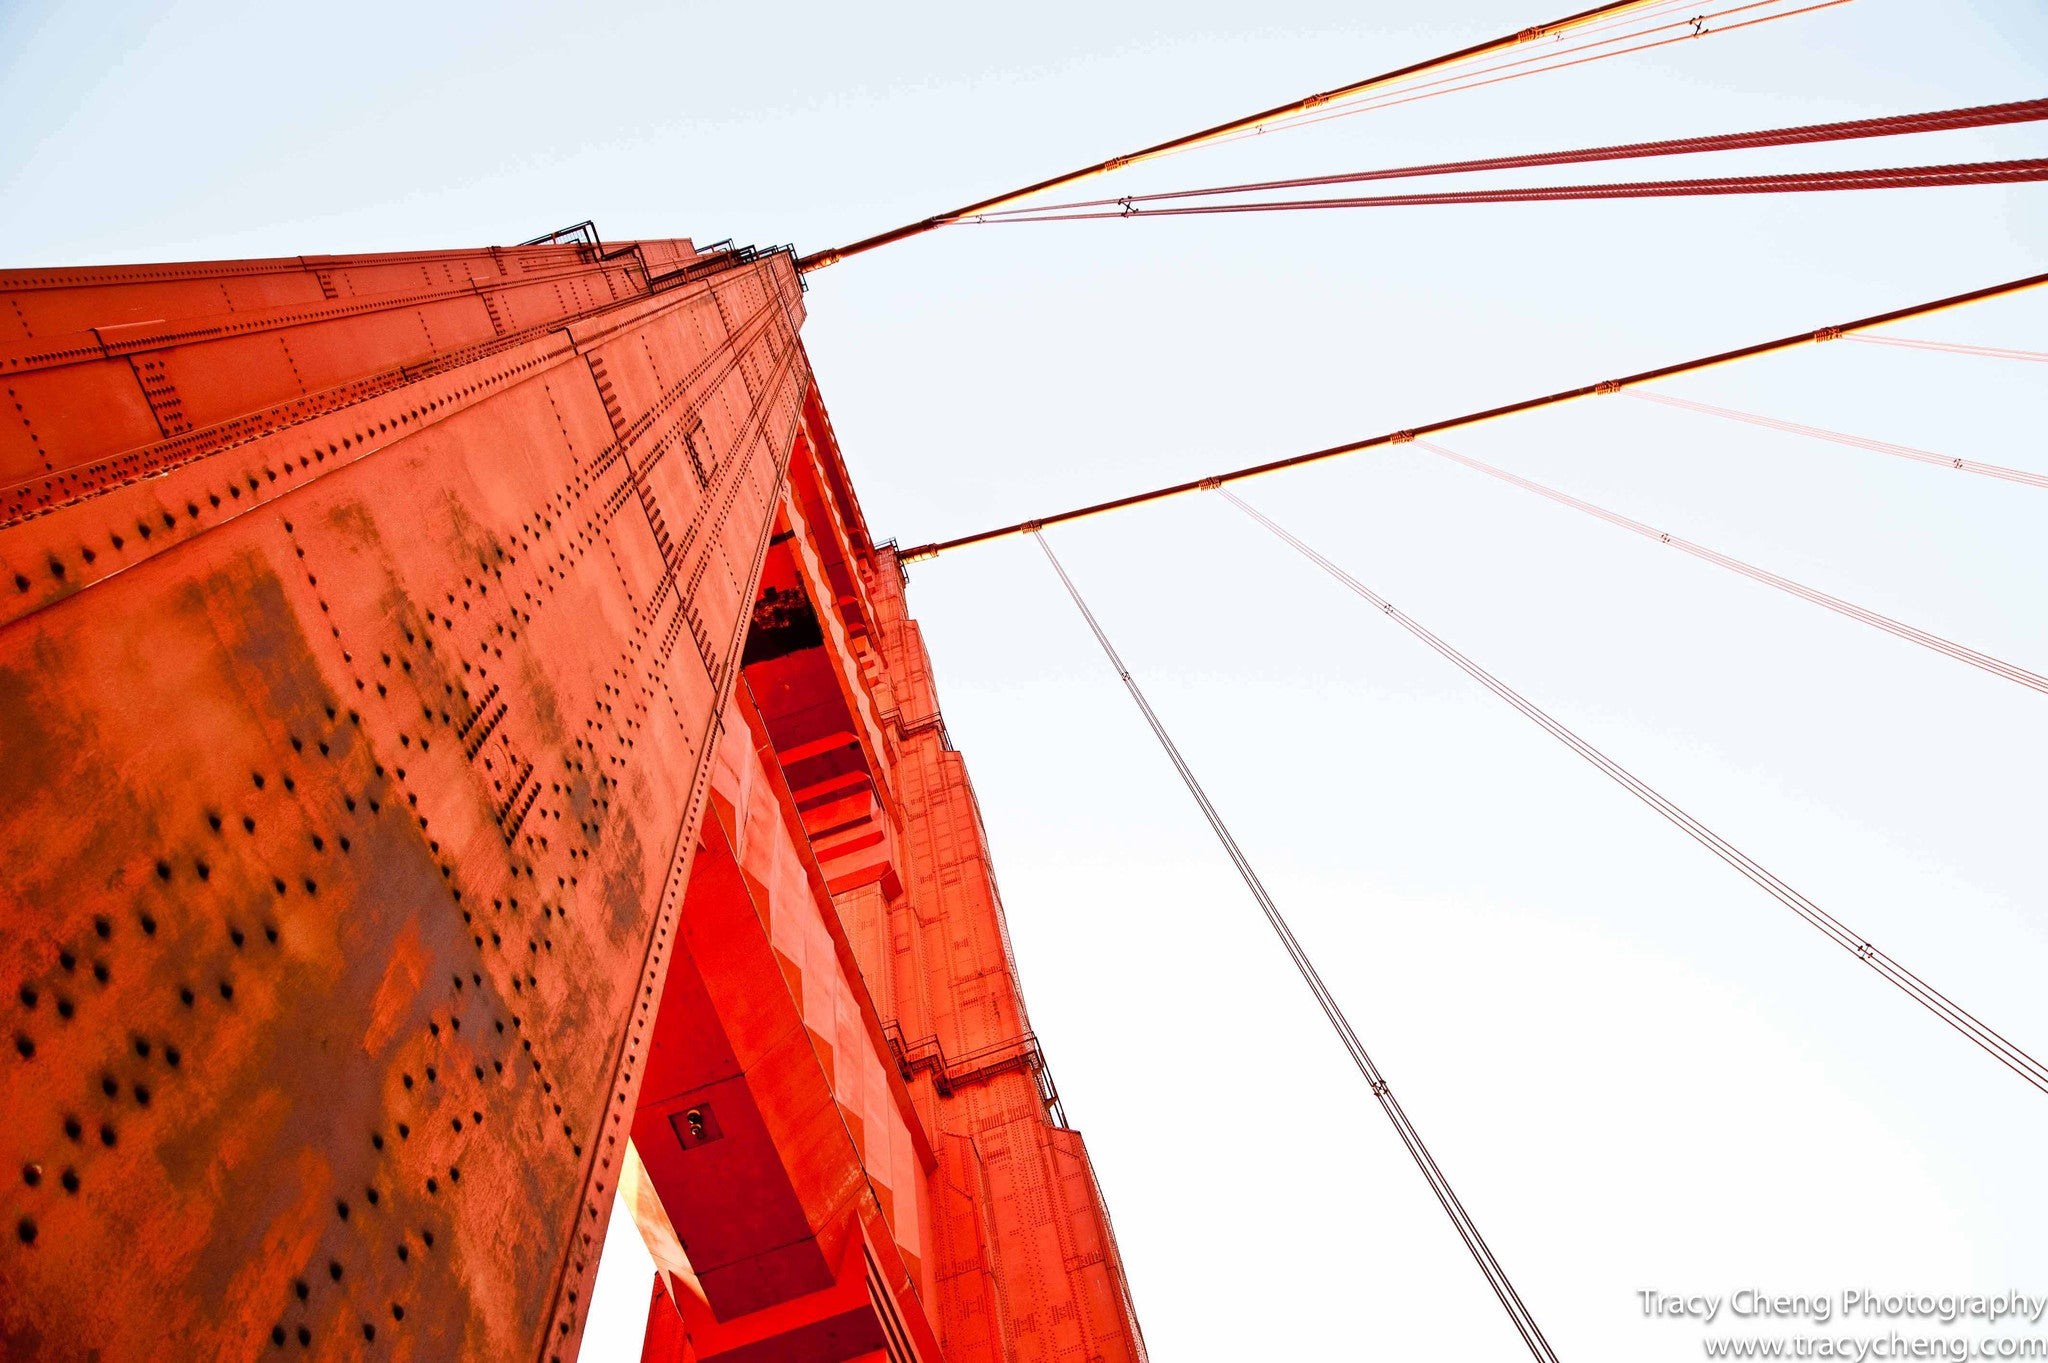 Golden Gate Bridge - Photography Wall Art Print by Tracy Cheng Photography on Jetset Times SHOP